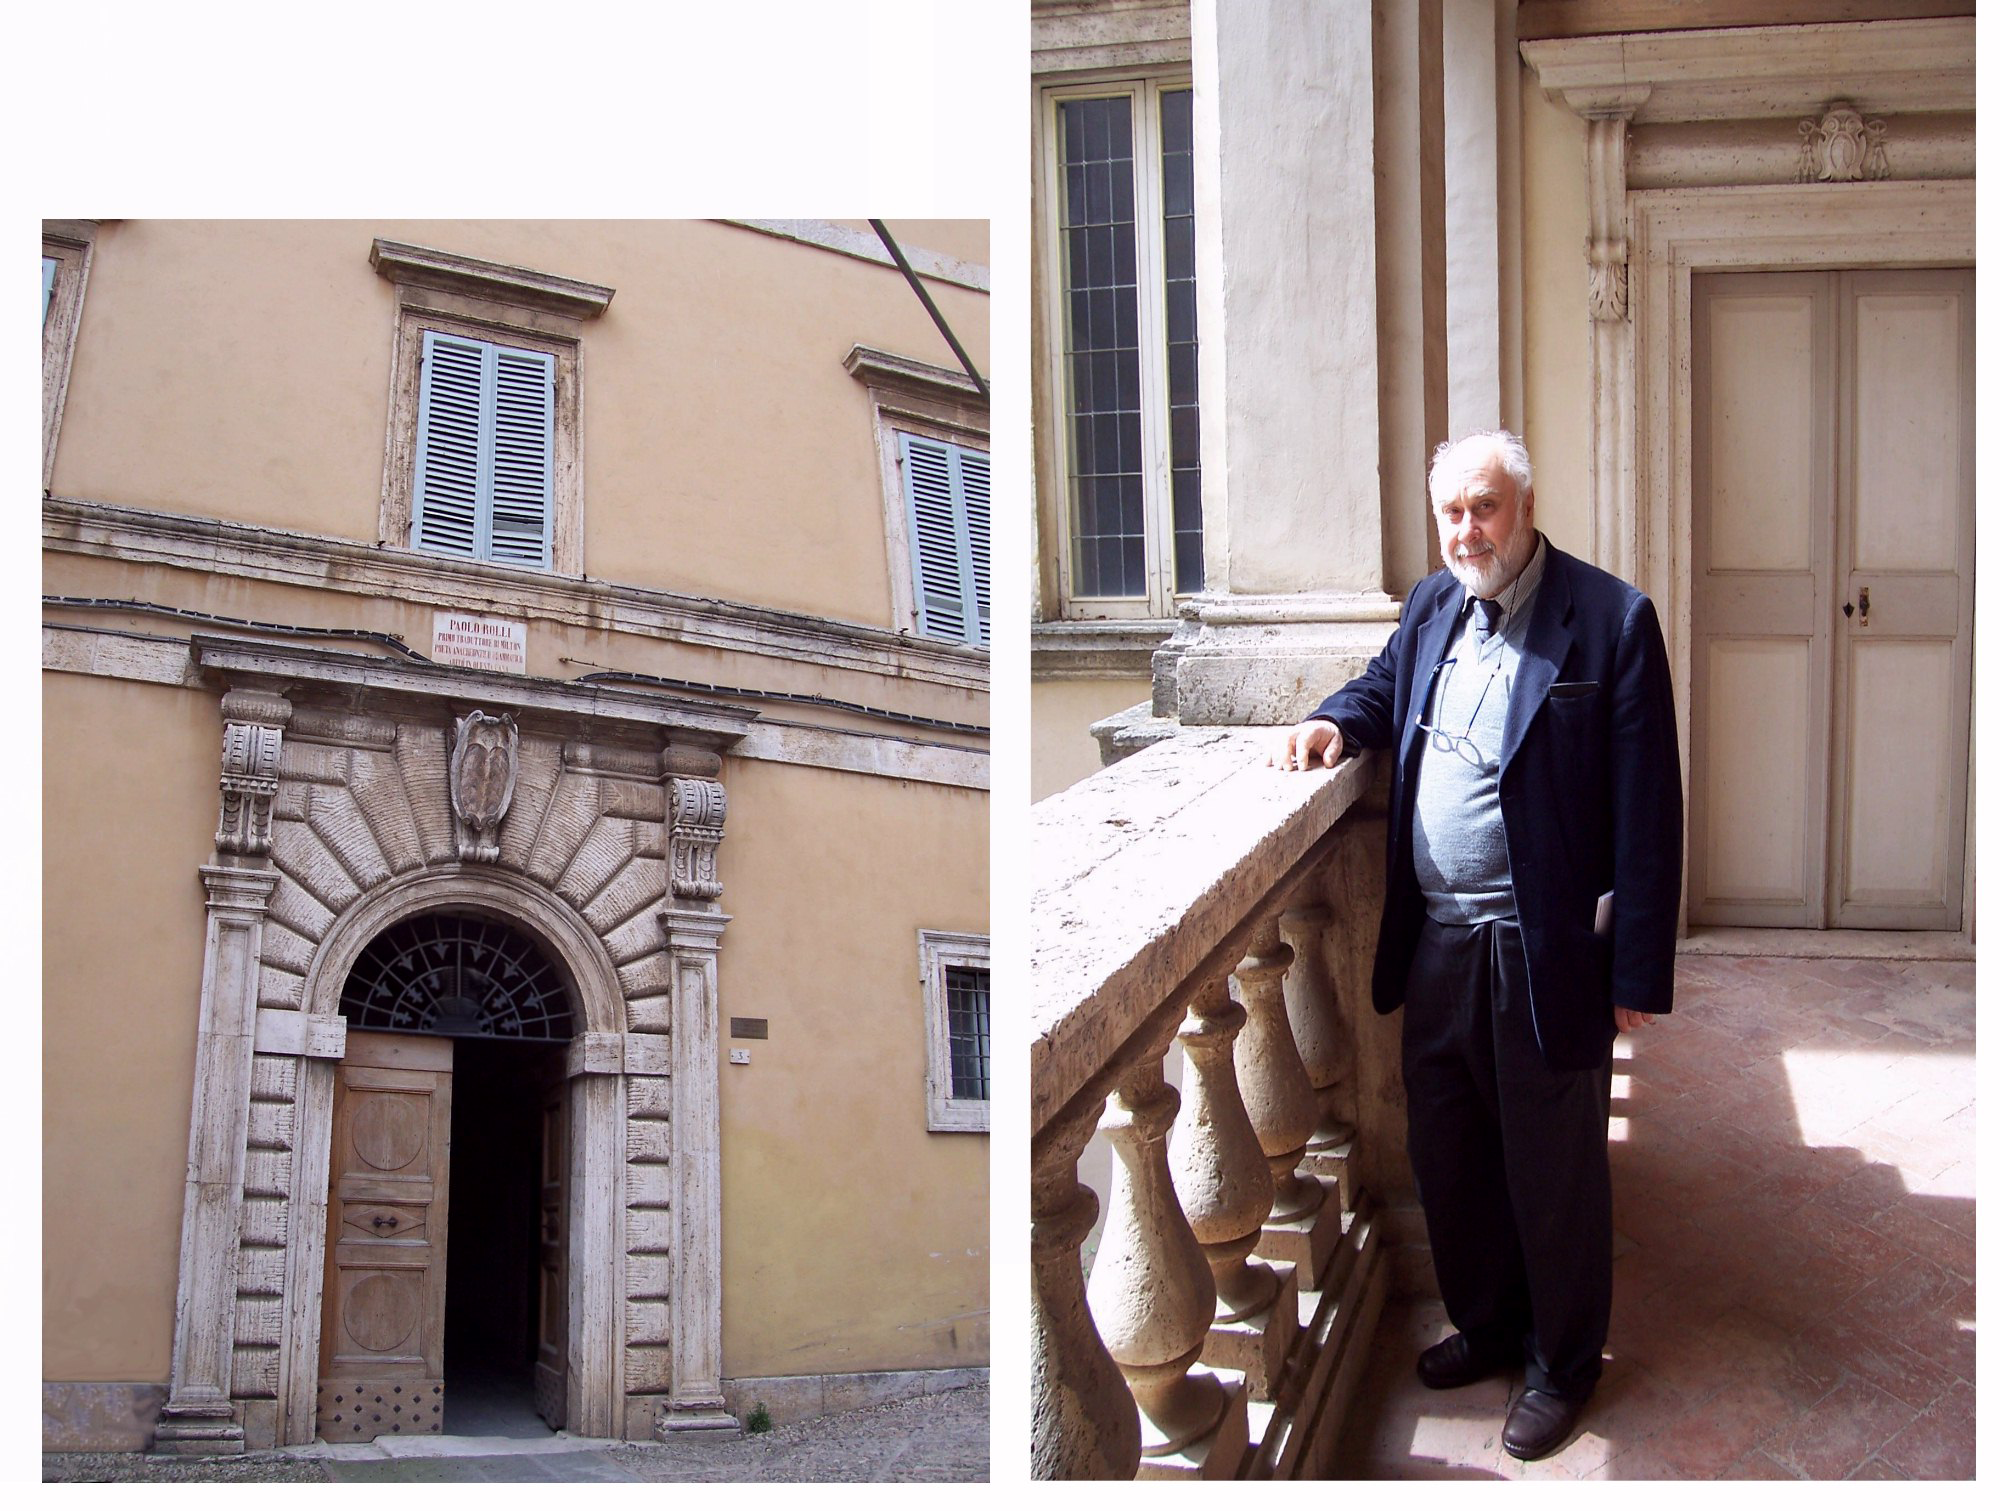 http://www.operatoday.com/Palazzina-Cesi_Prof_Tofanetti.png